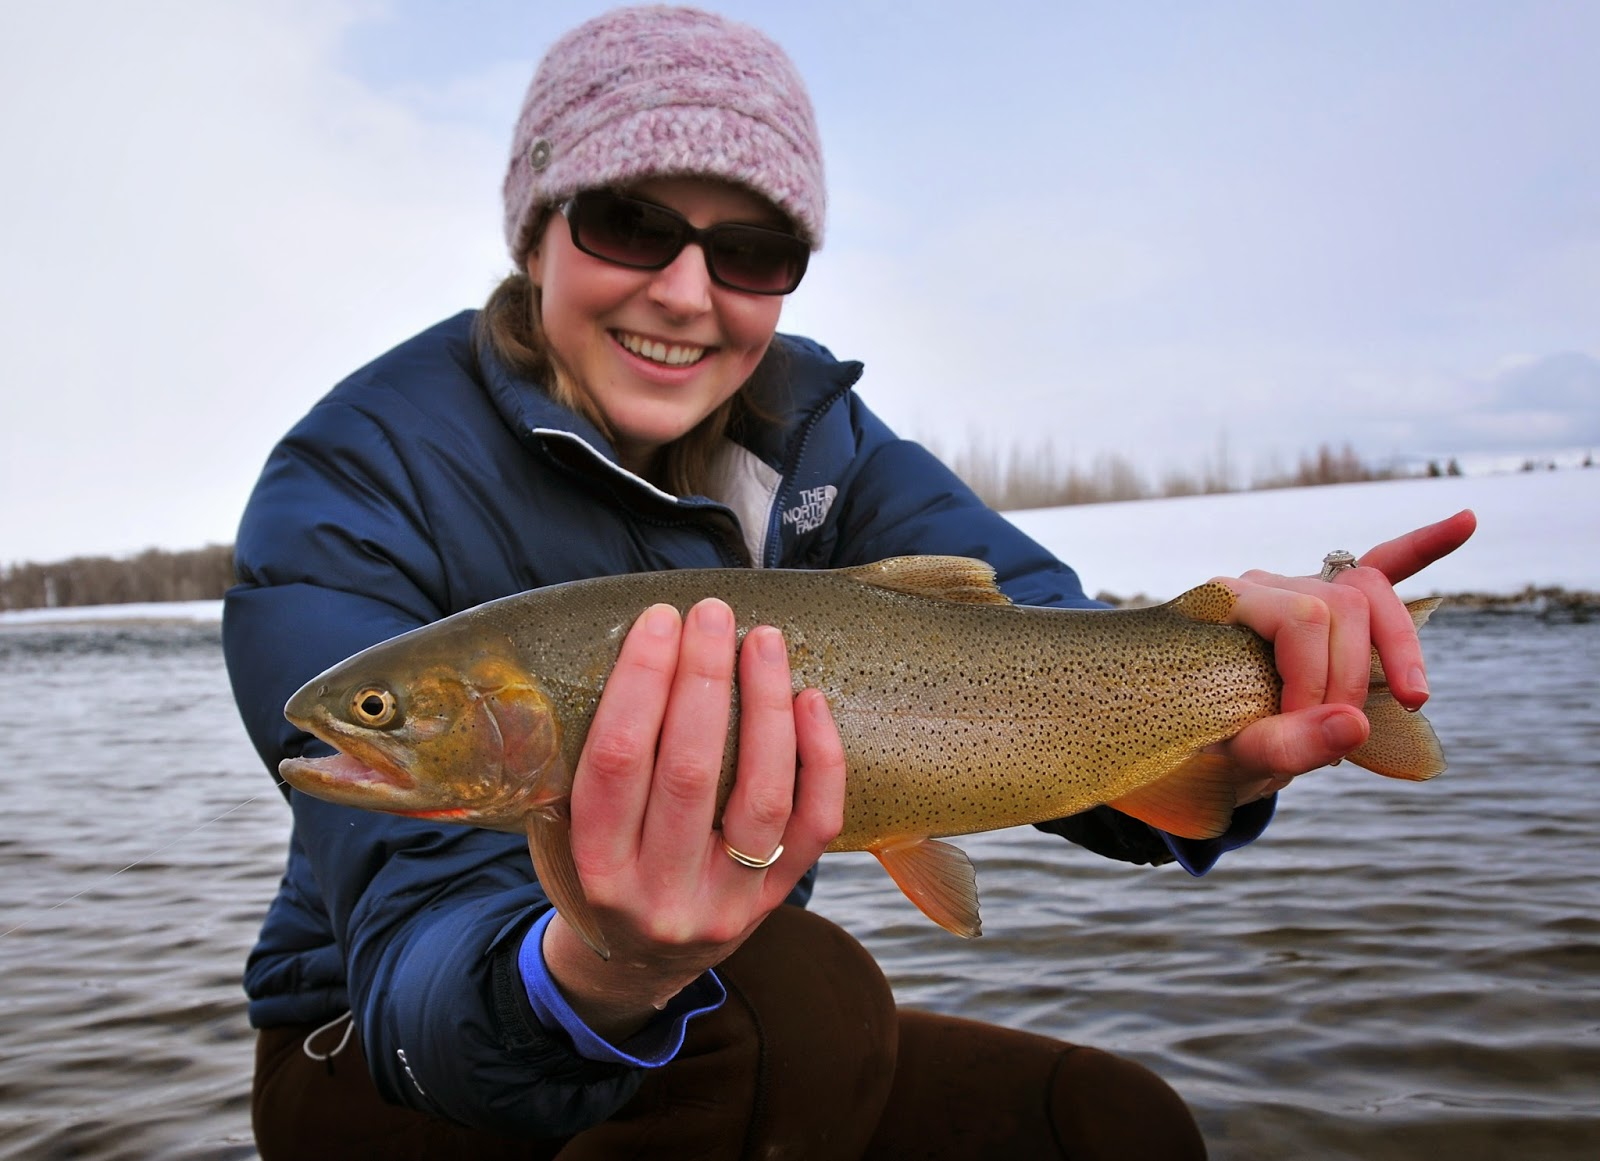 Jackson hole fly fishing mid winter report february 10 2014 for Wilson river fishing report